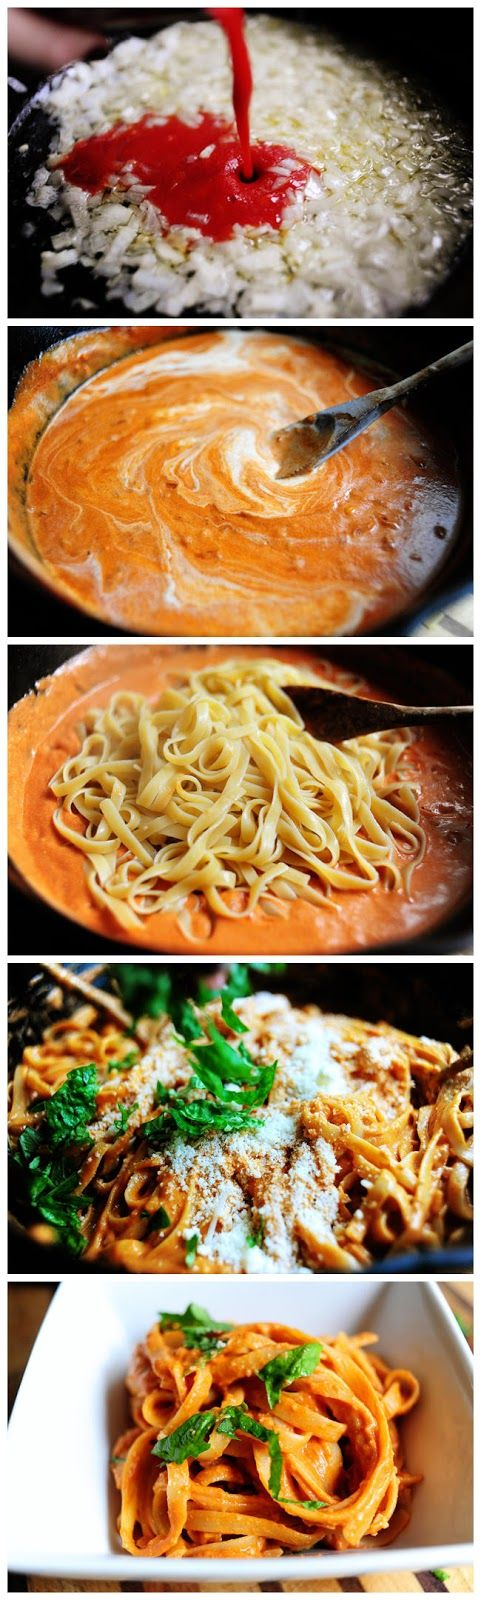 Pasta with Tomato Cream Sauce + 2 other pasta recipes